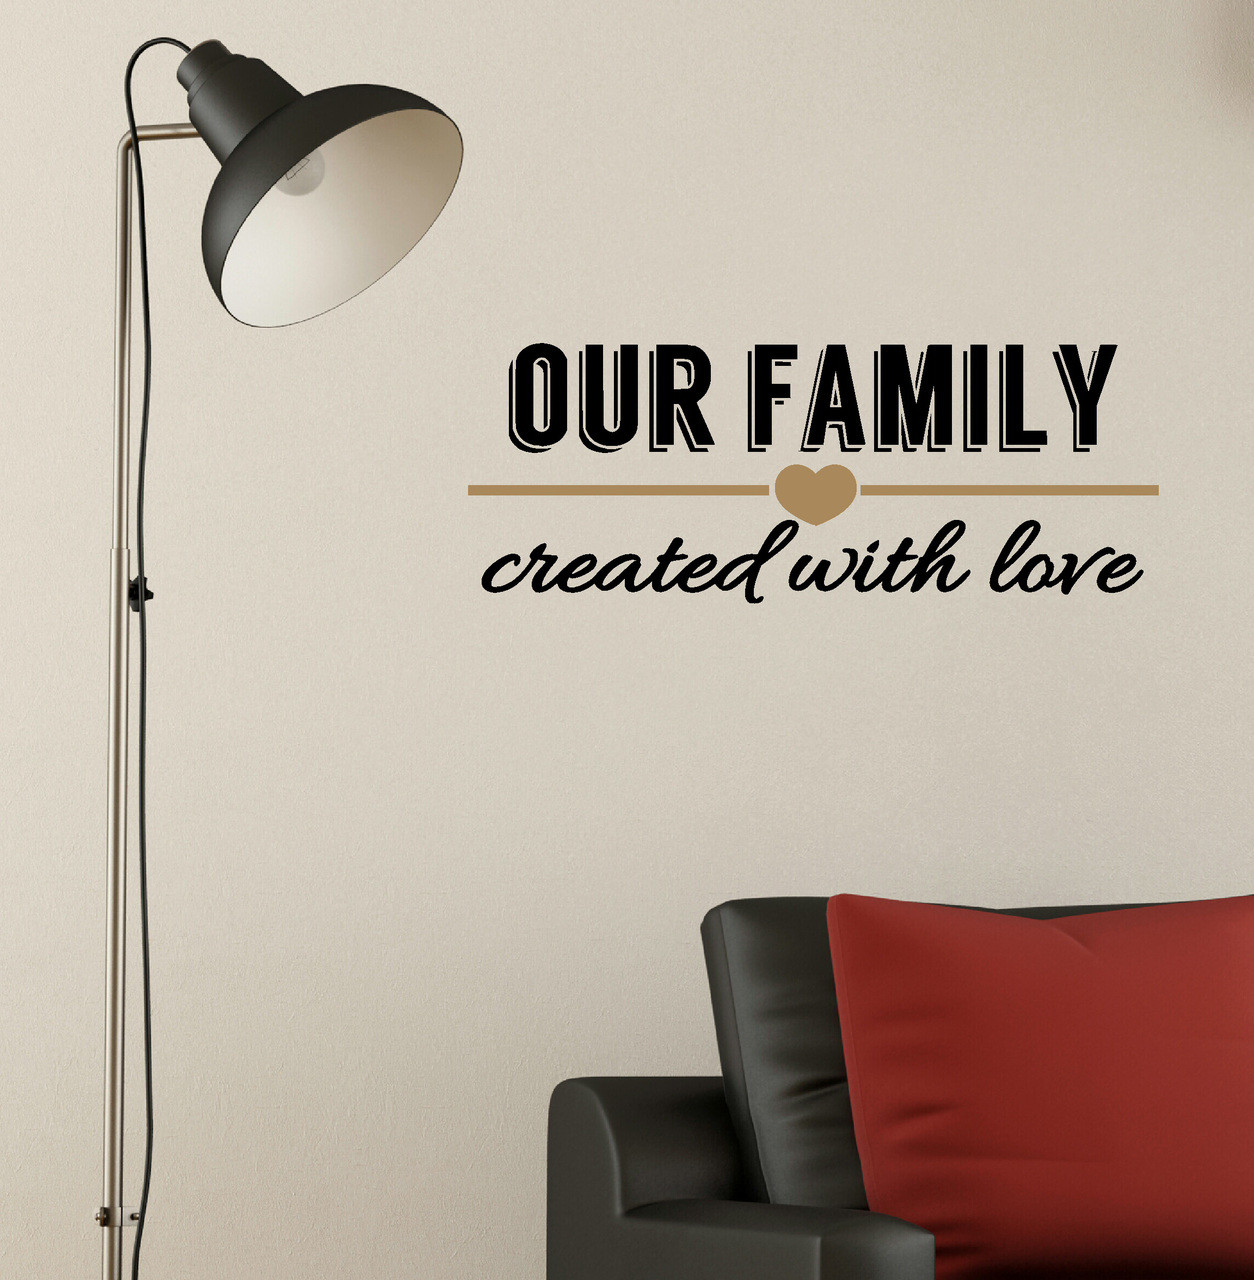 Our family created with love wall decal quote 2 color decorative loading zoom amipublicfo Choice Image